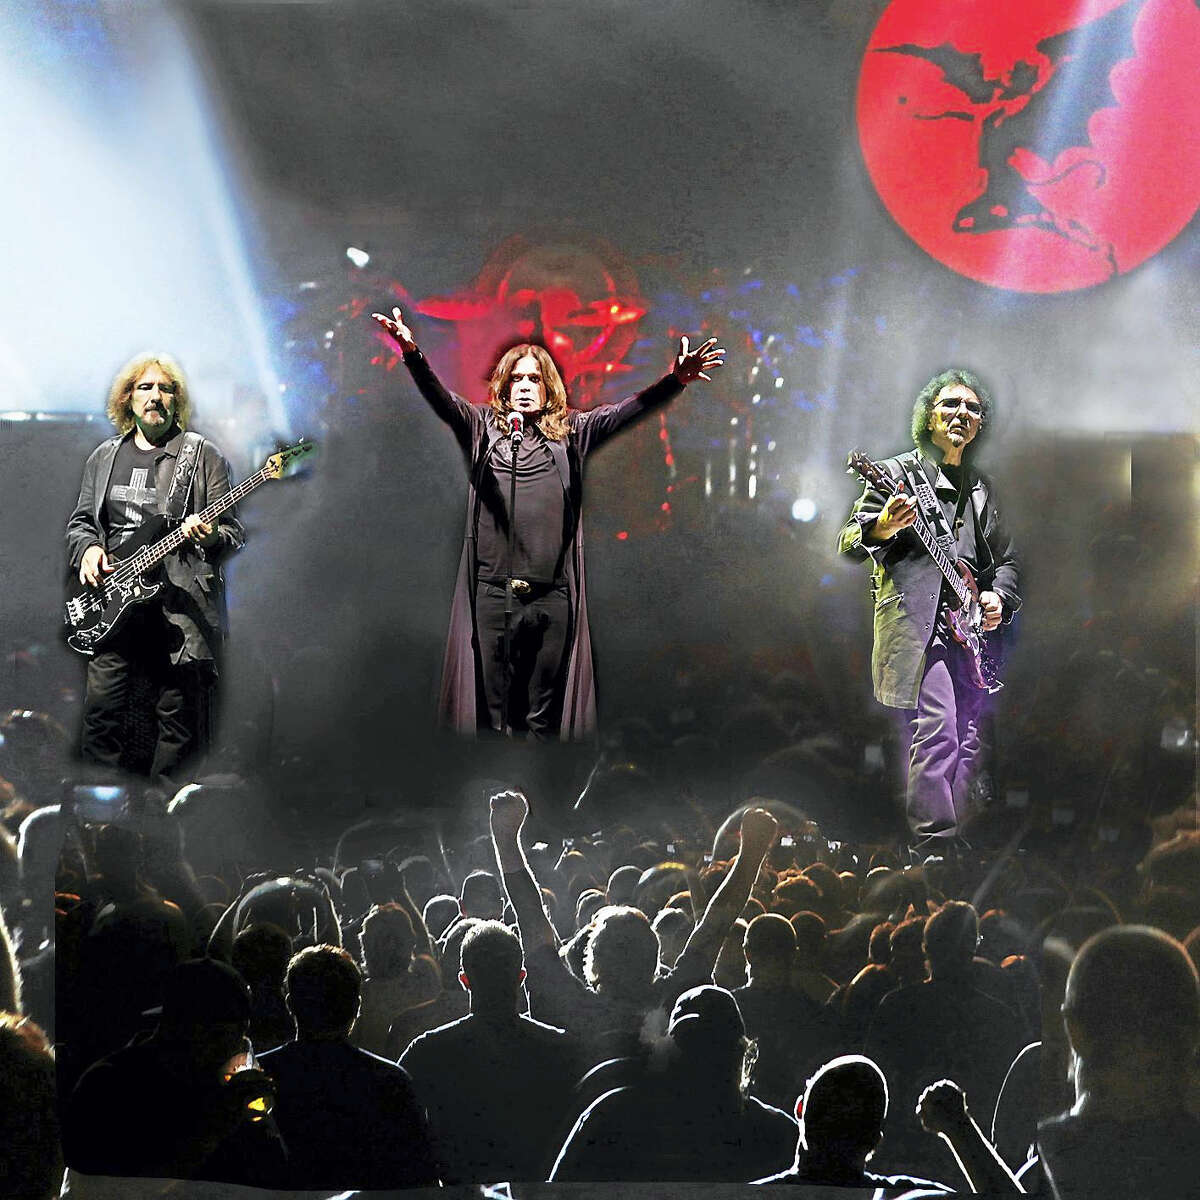 Ozzy Osbourne, center, with Black Sabbath on tour.